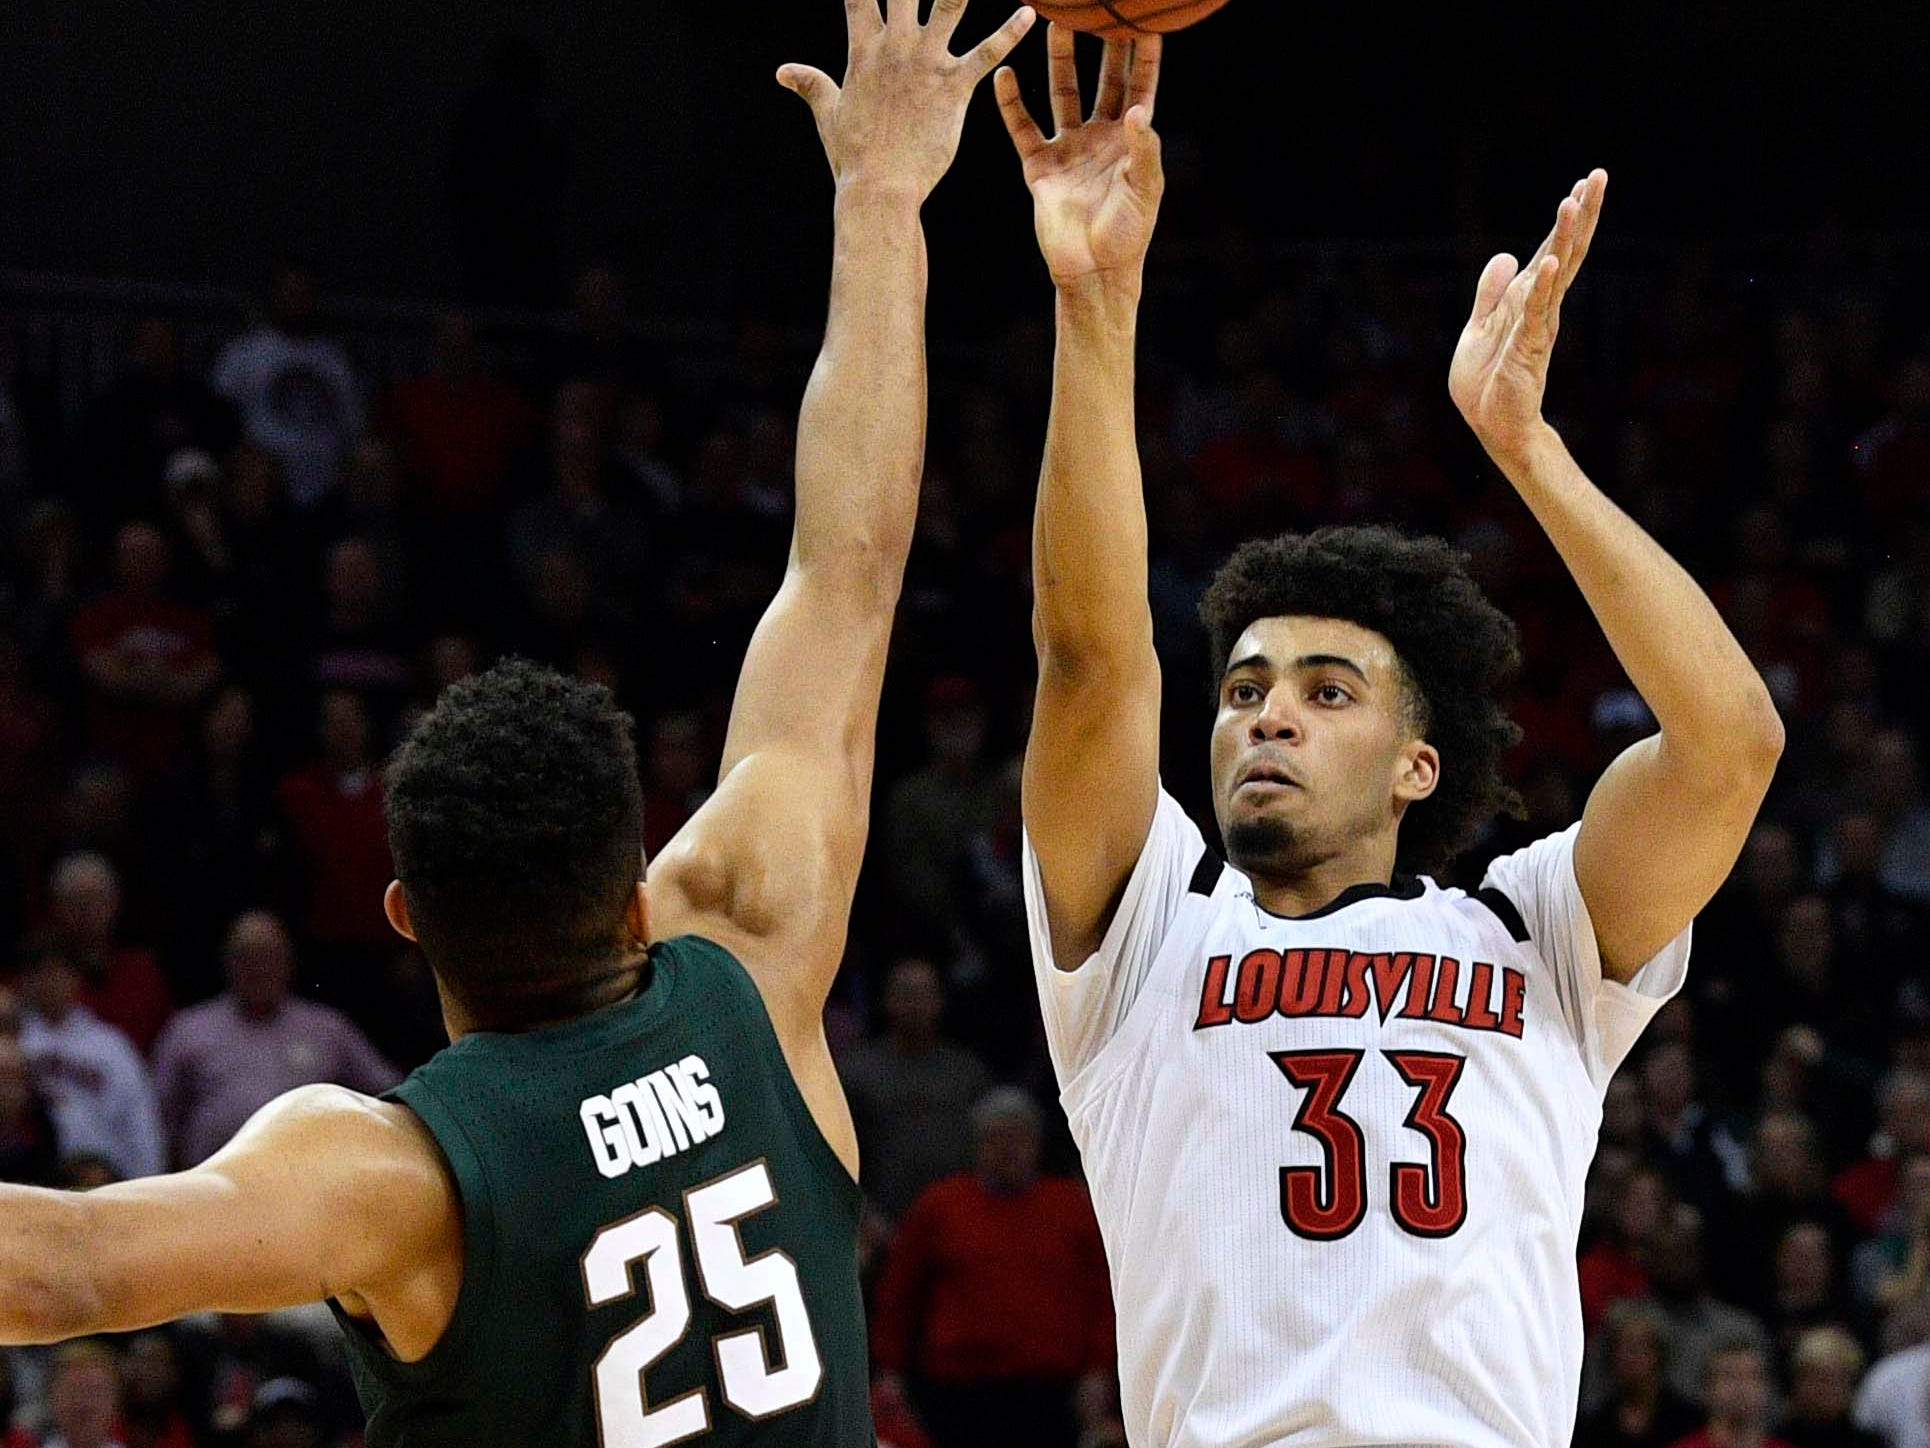 Louisville Cardinals forward Jordan Nwora (33) shoots against Michigan State Spartans forward Kenny Goins (25) during overtime at KFC Yum! Center. Louisville defeated Michigan State 82-78.